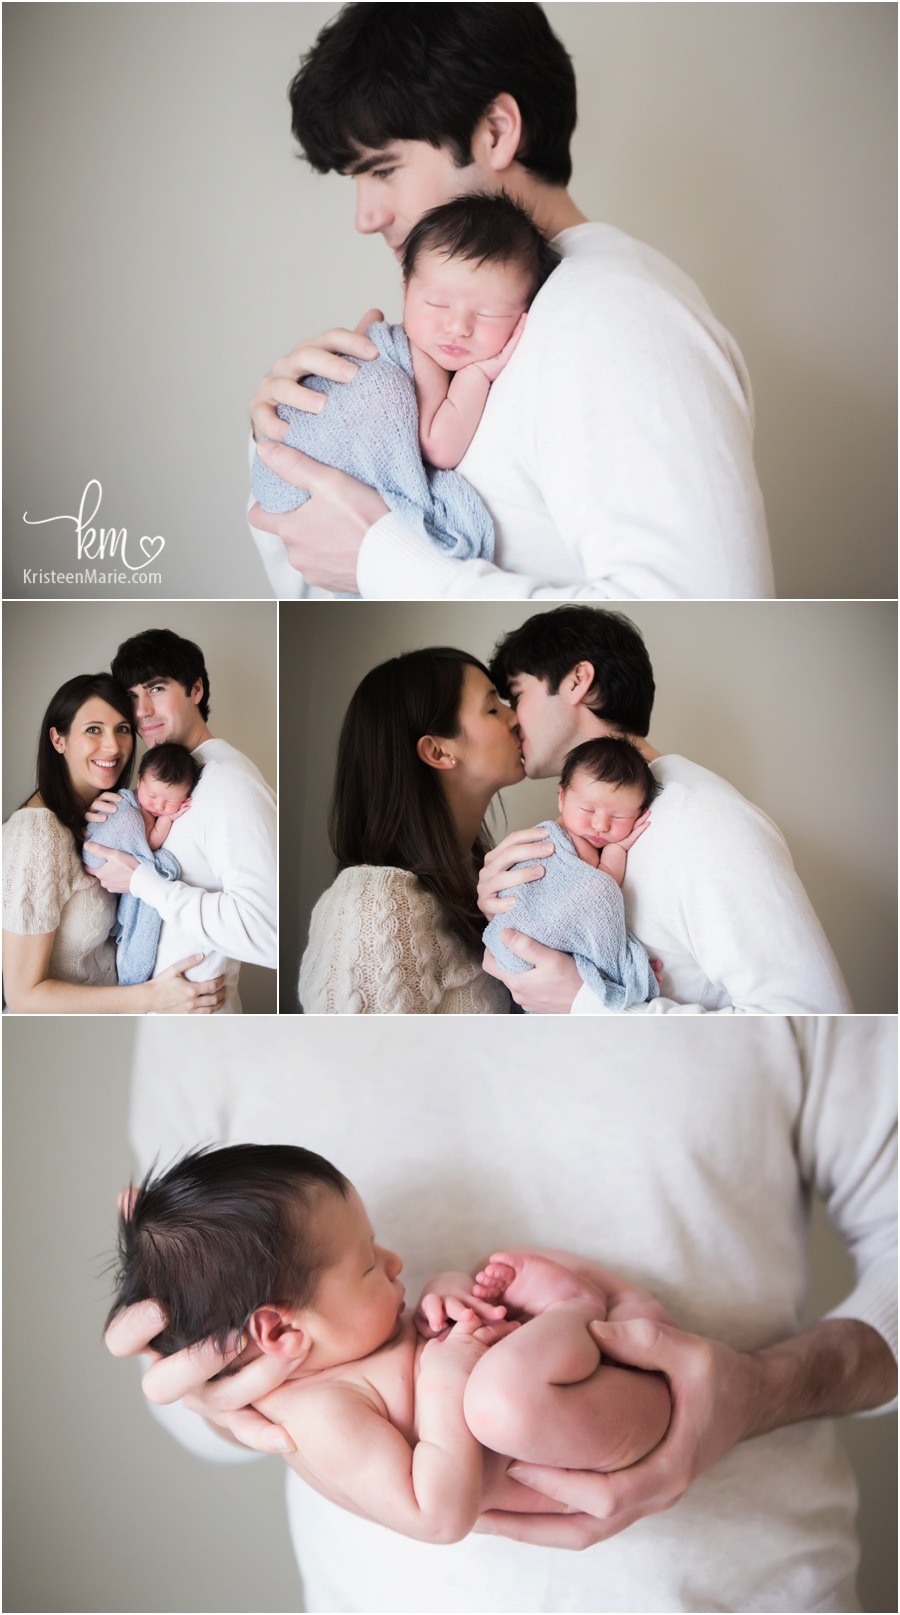 newborn family shots - love the cream and grey tones